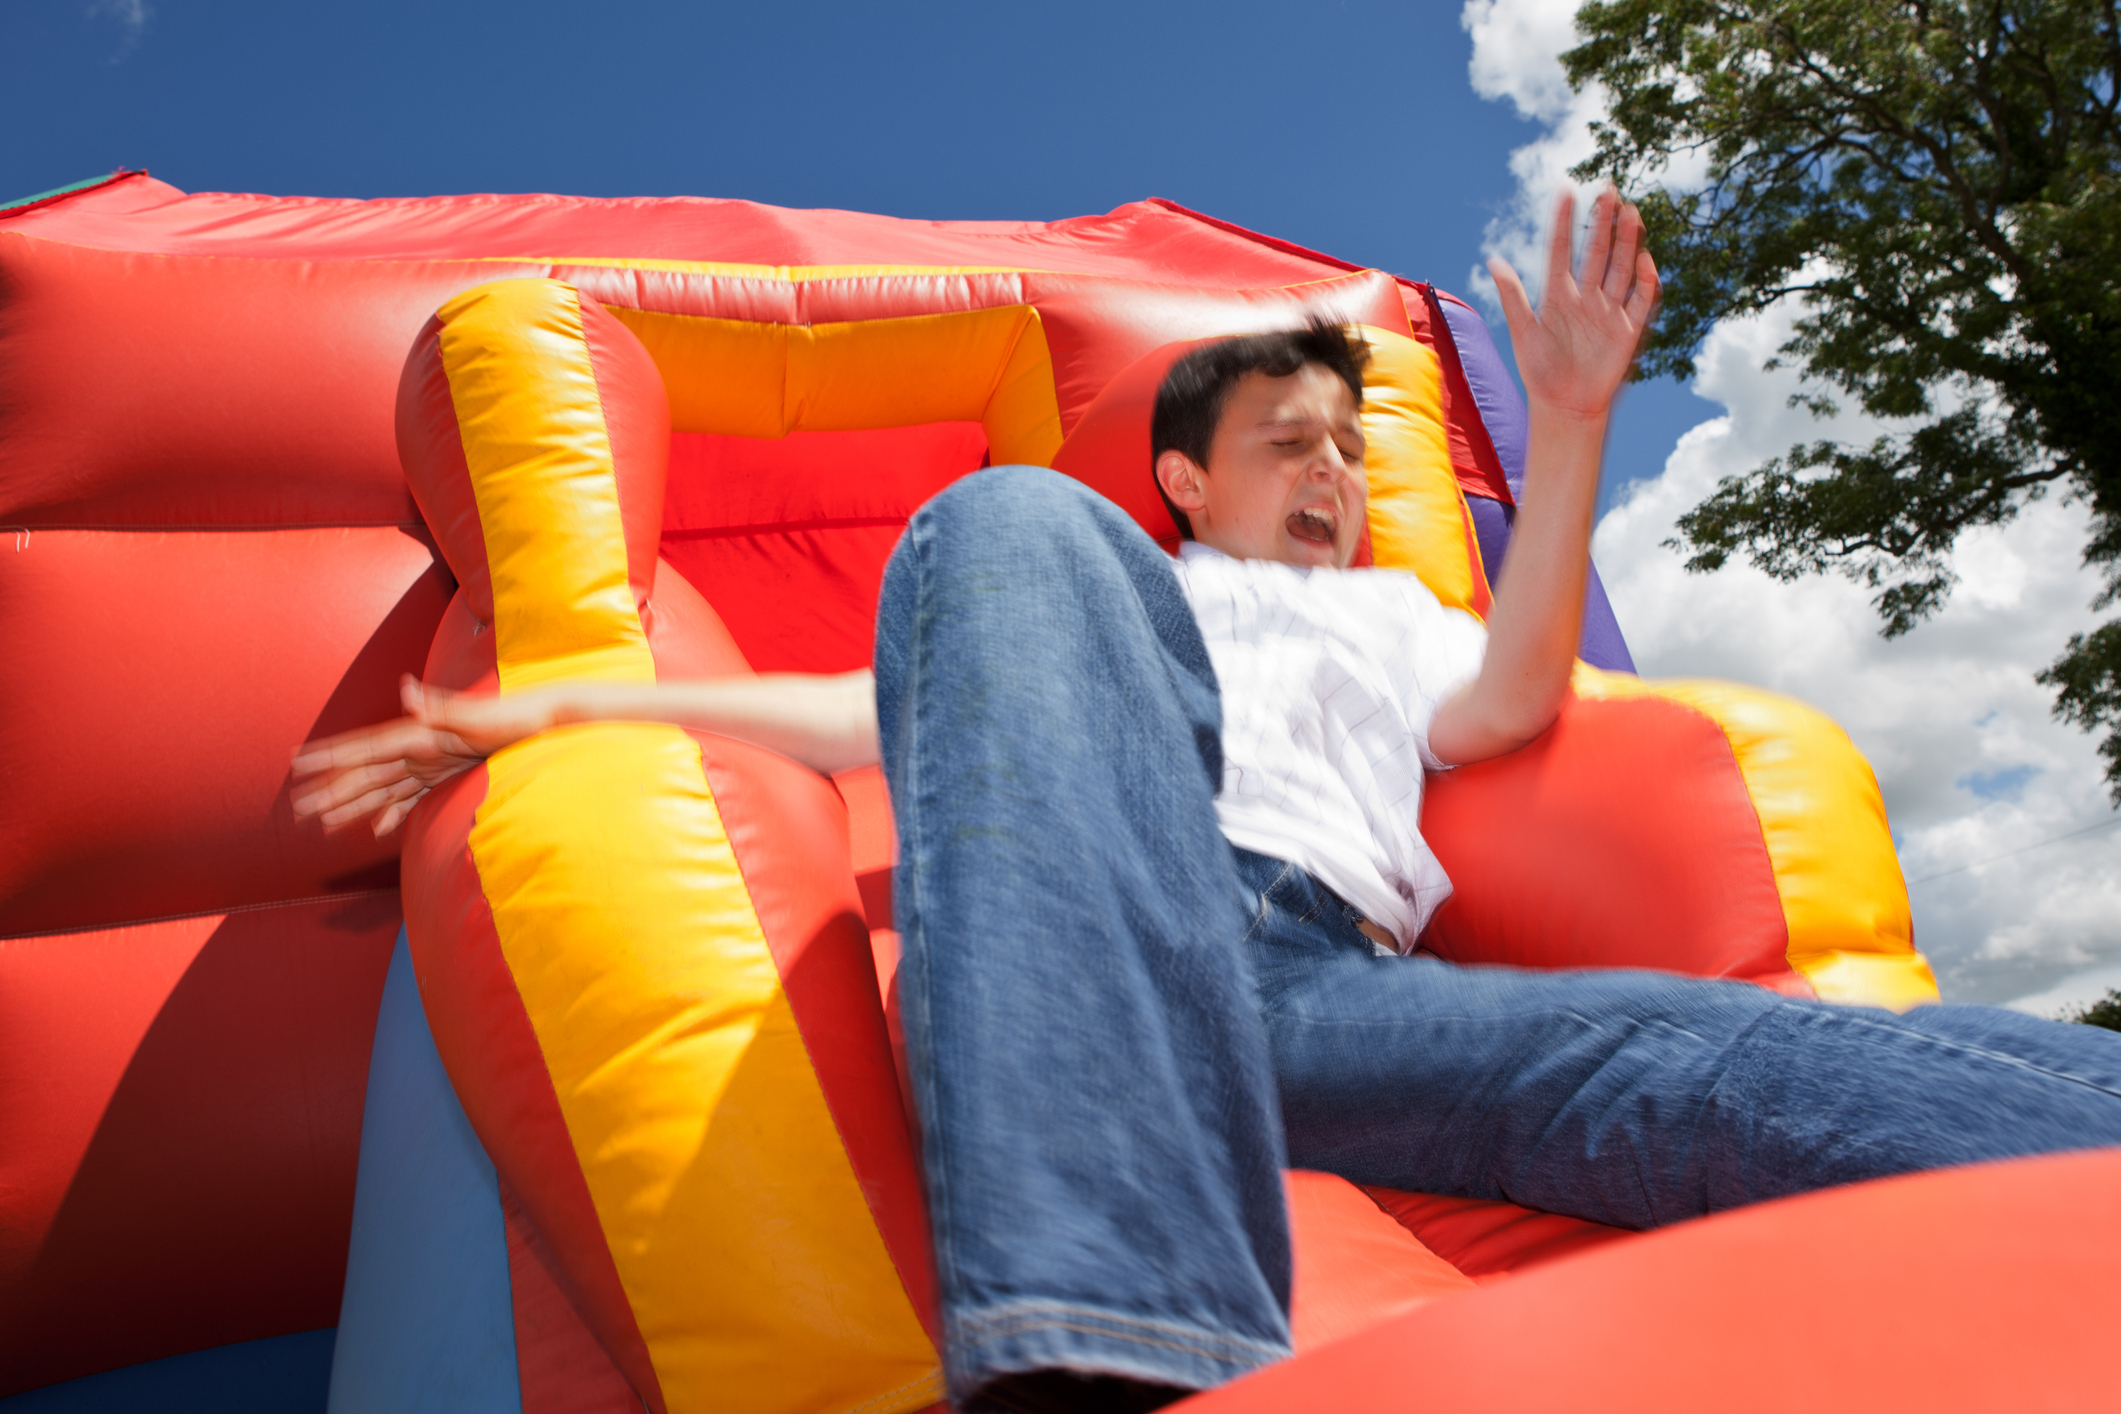 Inflatable slide (bouncy castle) accident.